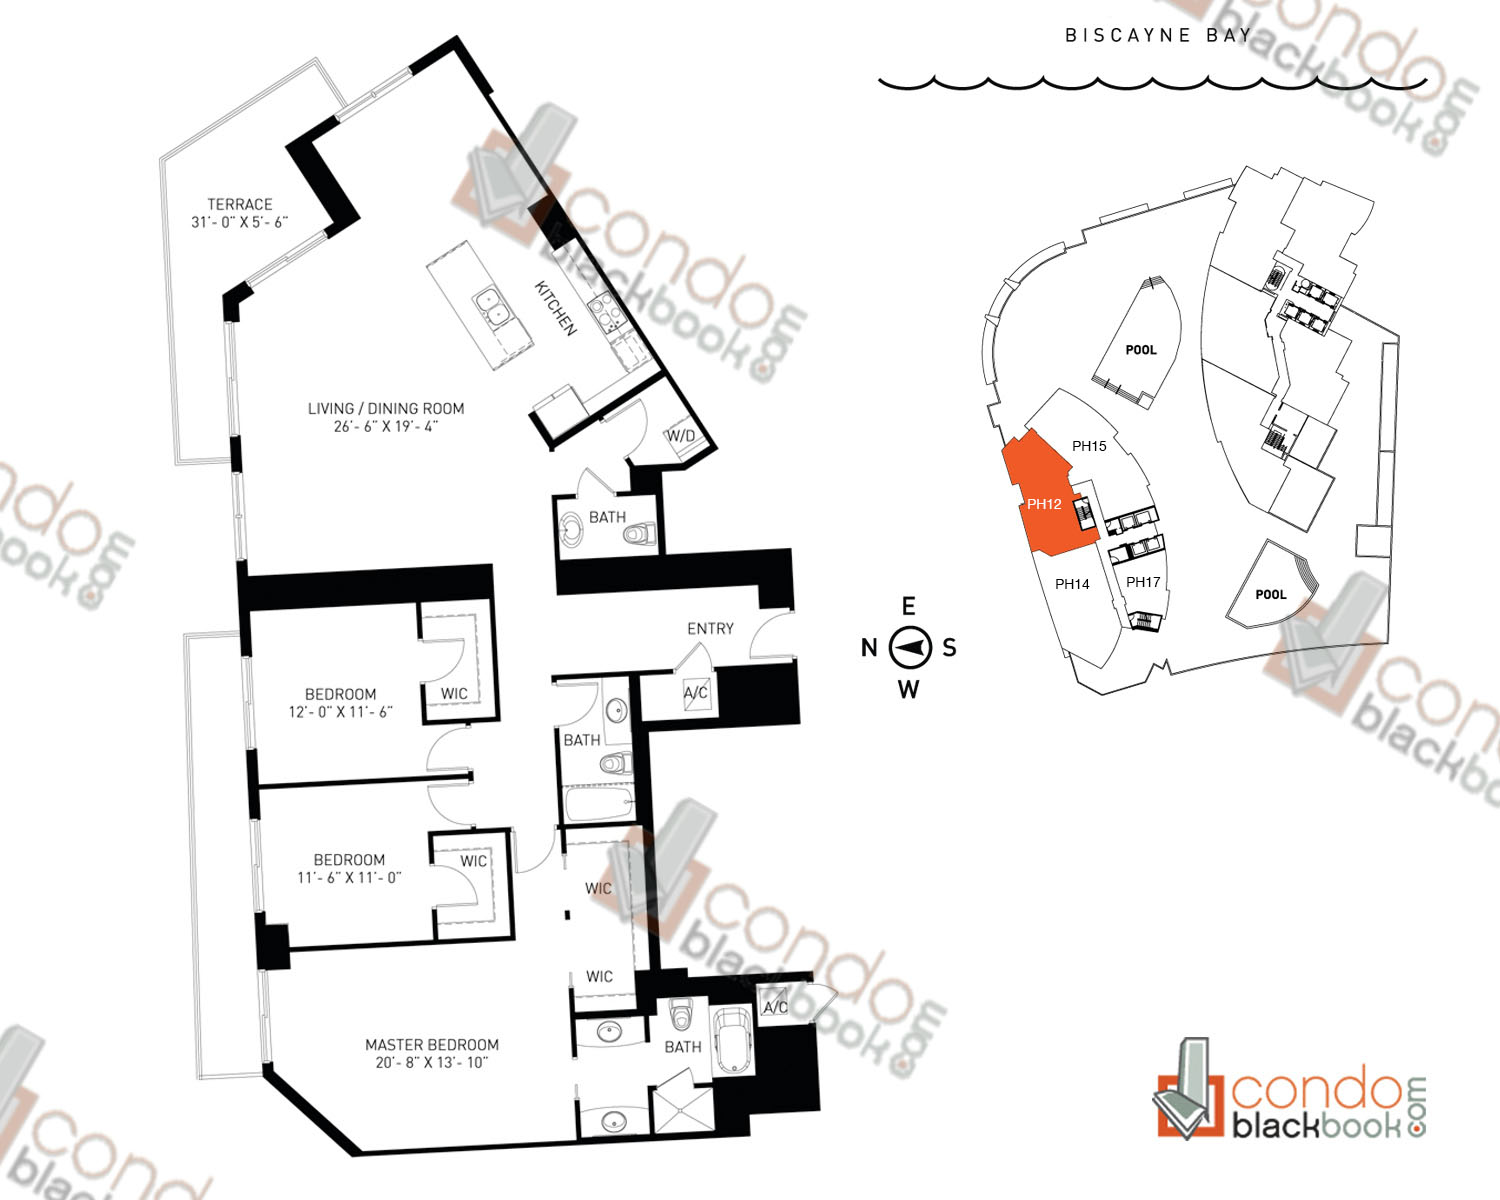 Floor plan for Quantum on the Bay Edgewater Miami, model PH_12, line North Tower - 12, 3/2.5 bedrooms, 2,023 sq ft